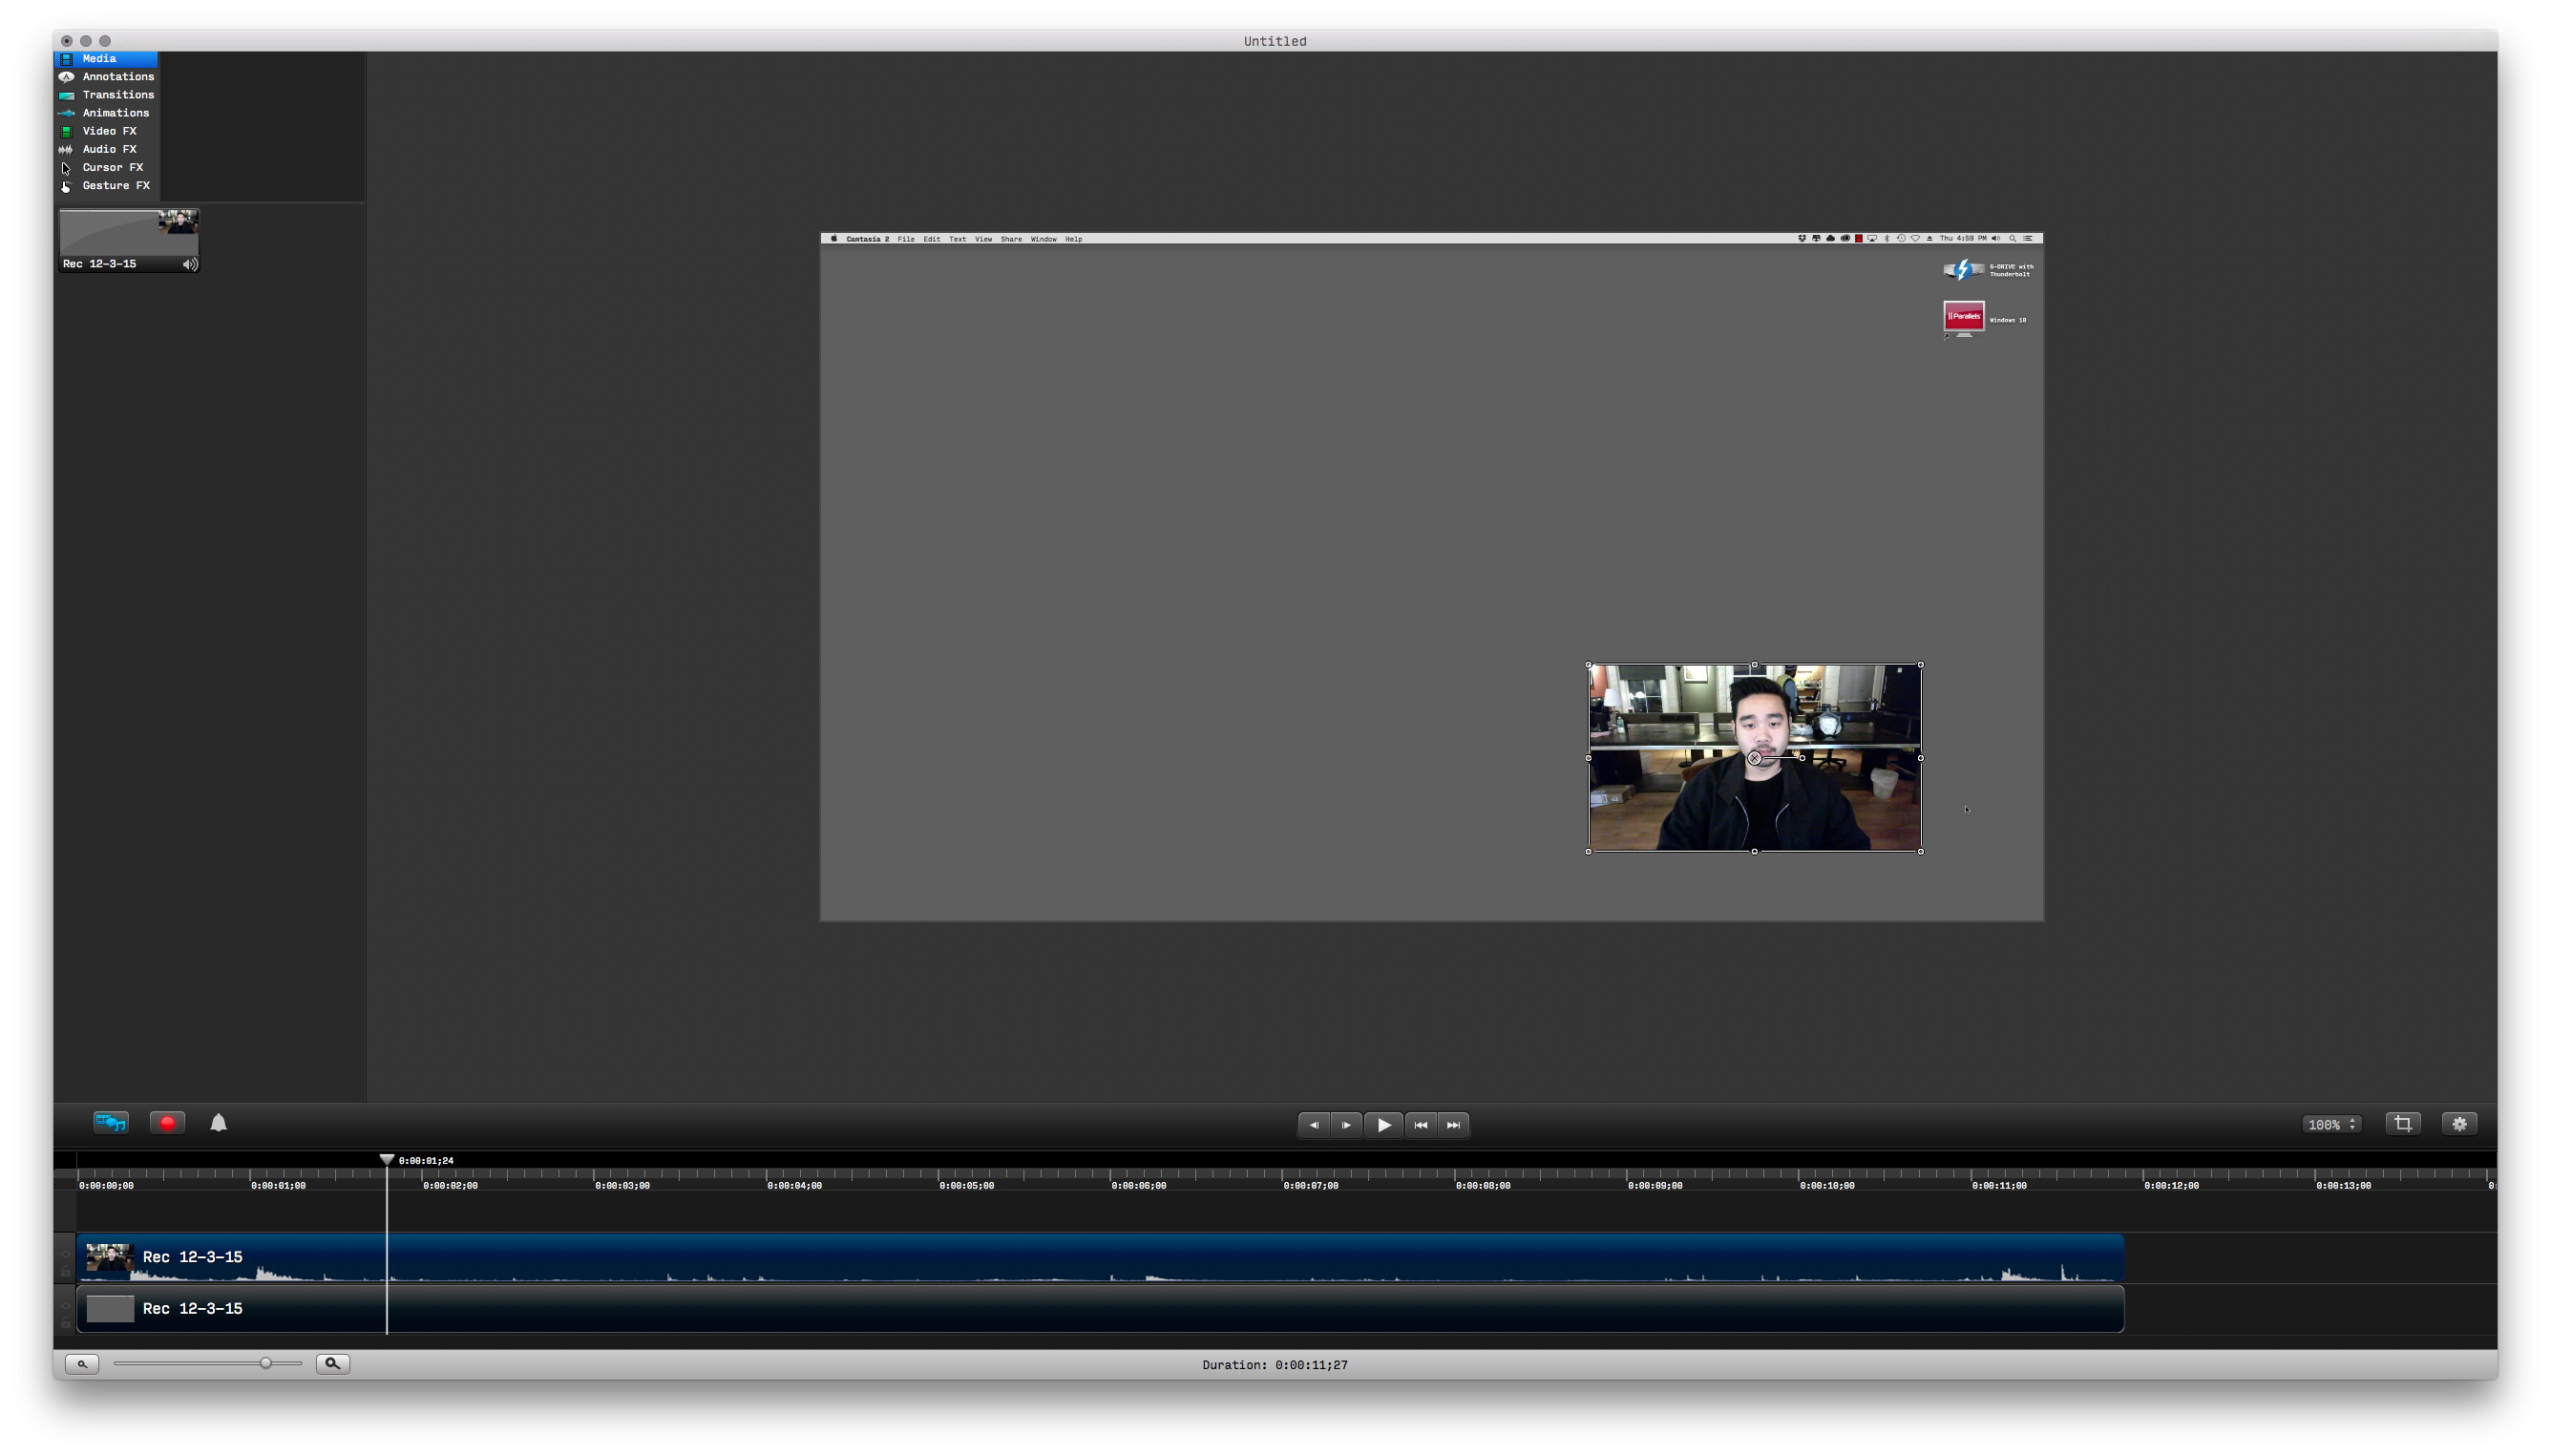 Recording editing and exporting with camtasia for mac skillshare a white border will appear and allow you to drag at the corners to resize and place the videos you can also rotate from the center handle ccuart Gallery